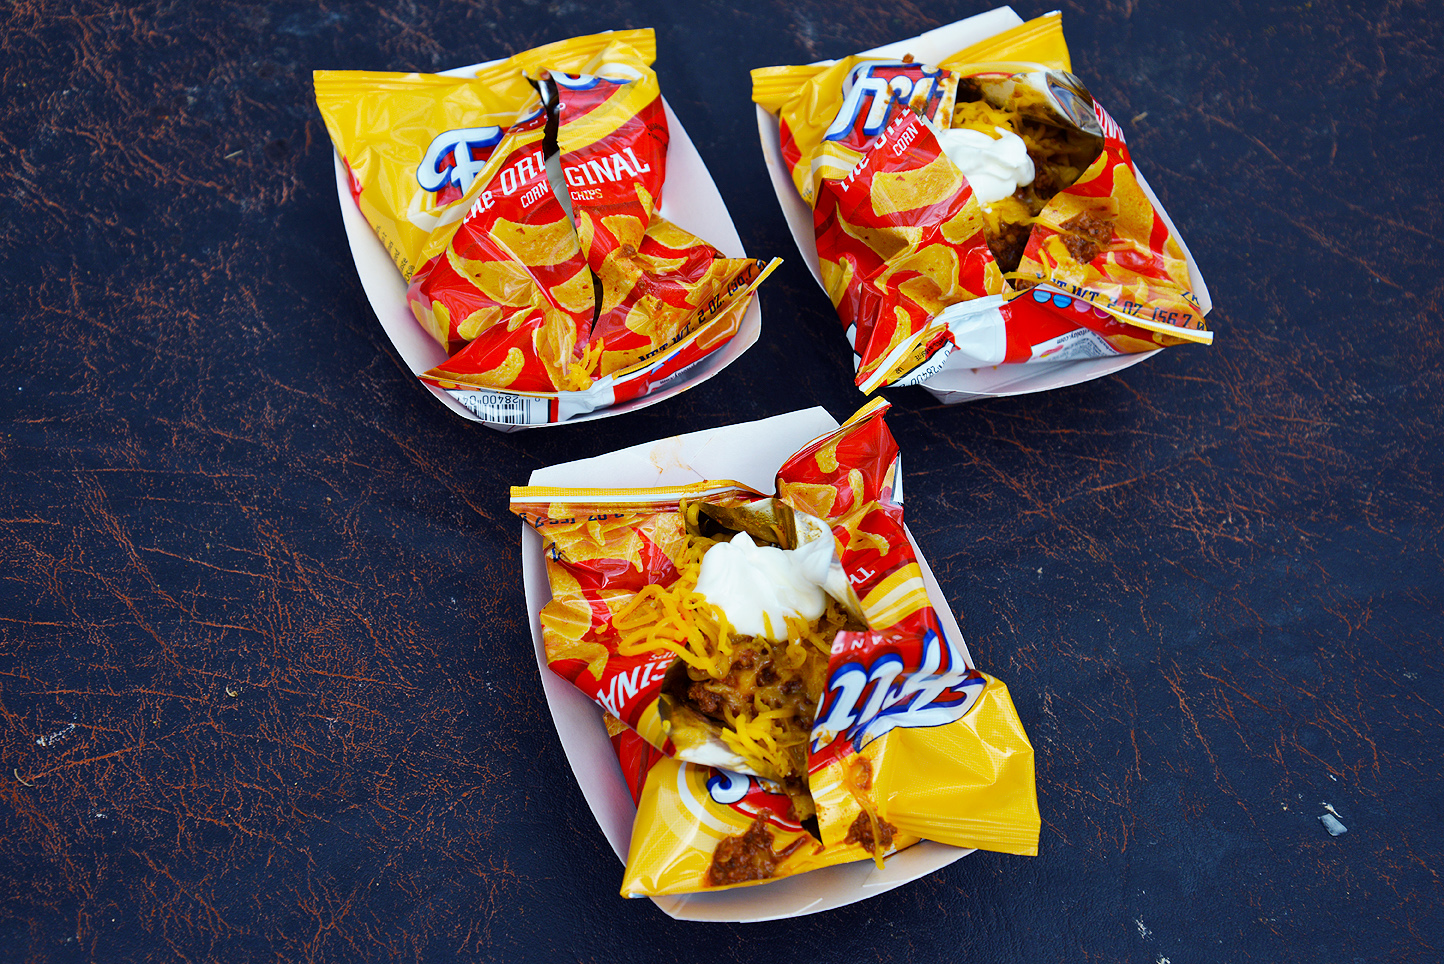 Frito pie is often served right inside the chip bag